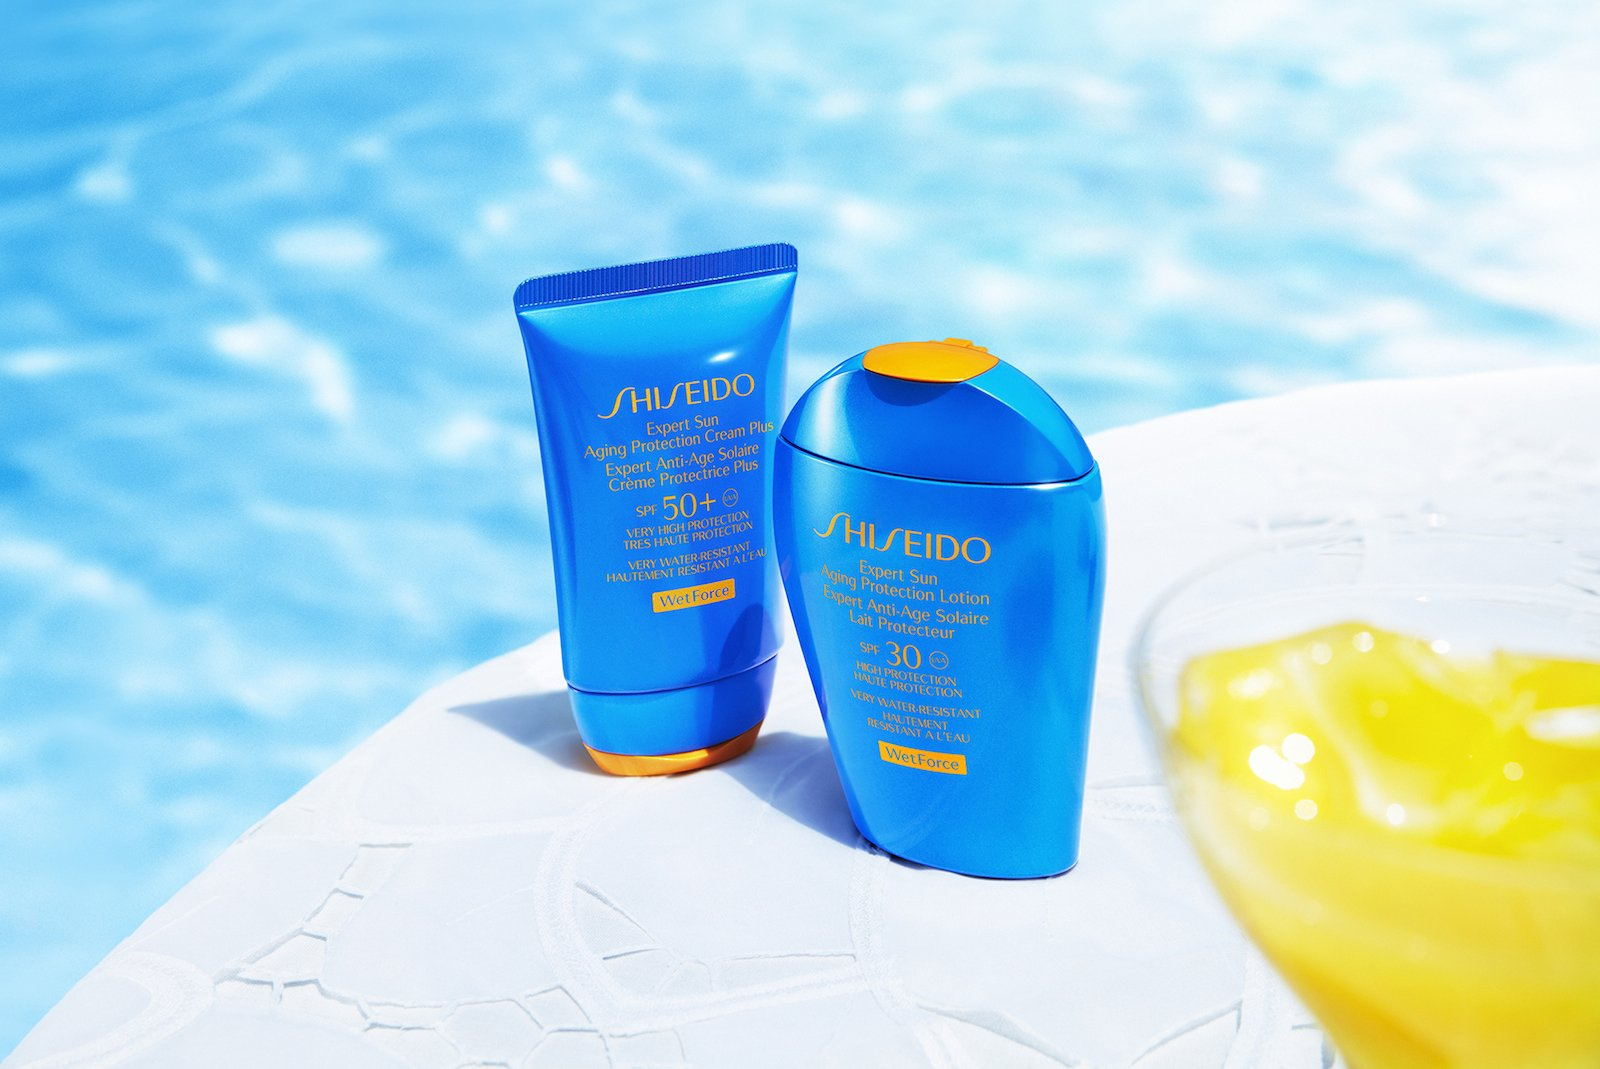 Shiseido WetForce Technology Brings World First To Sun Care Products